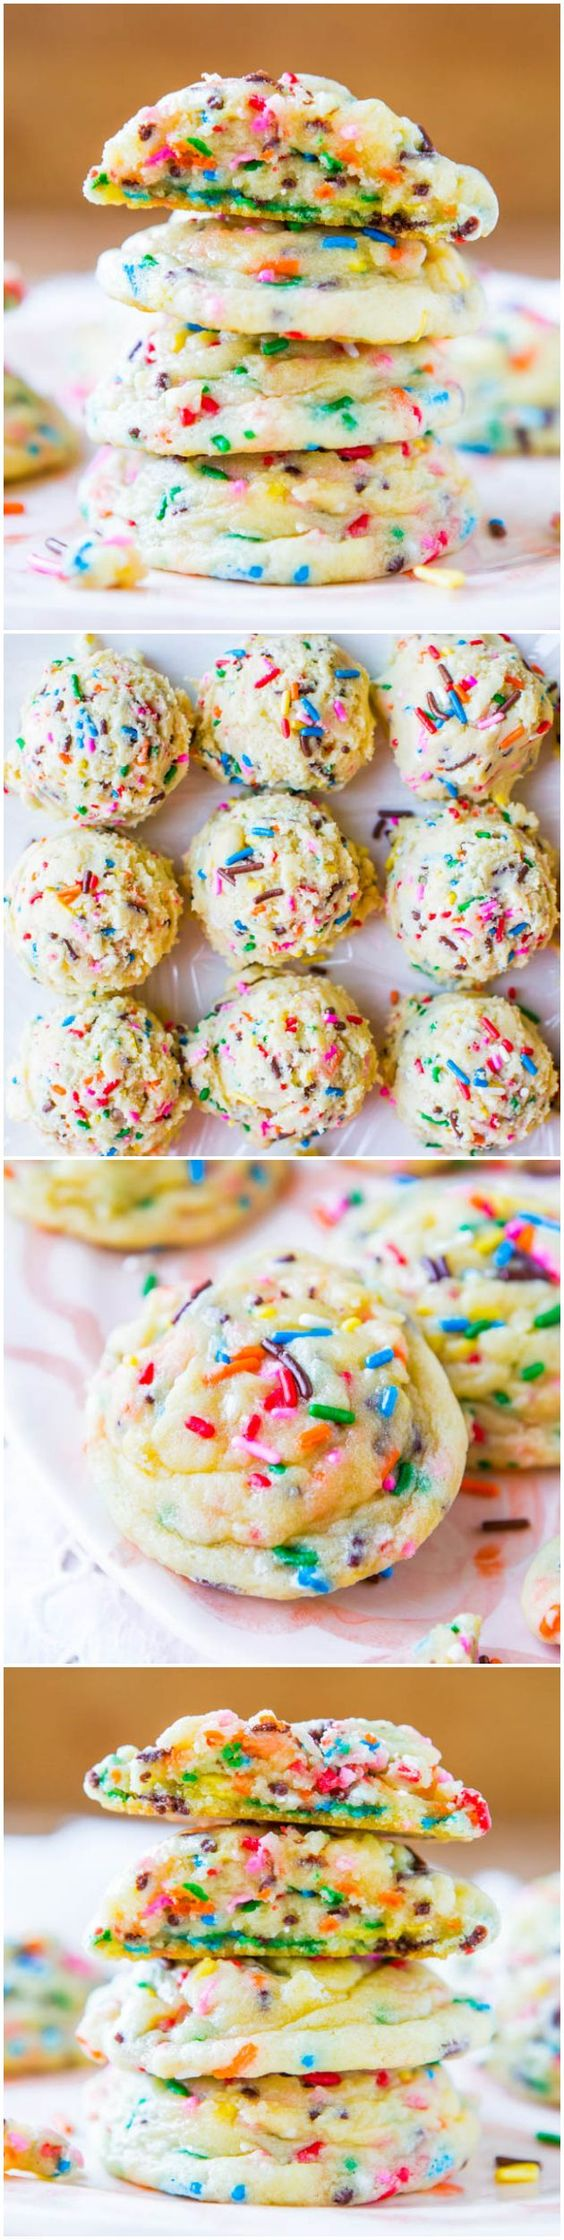 Softbatch Funfetti Sugar Cookies - Move over cake mix! These easy, super soft cookies are from scratch & loaded with sprinkles!